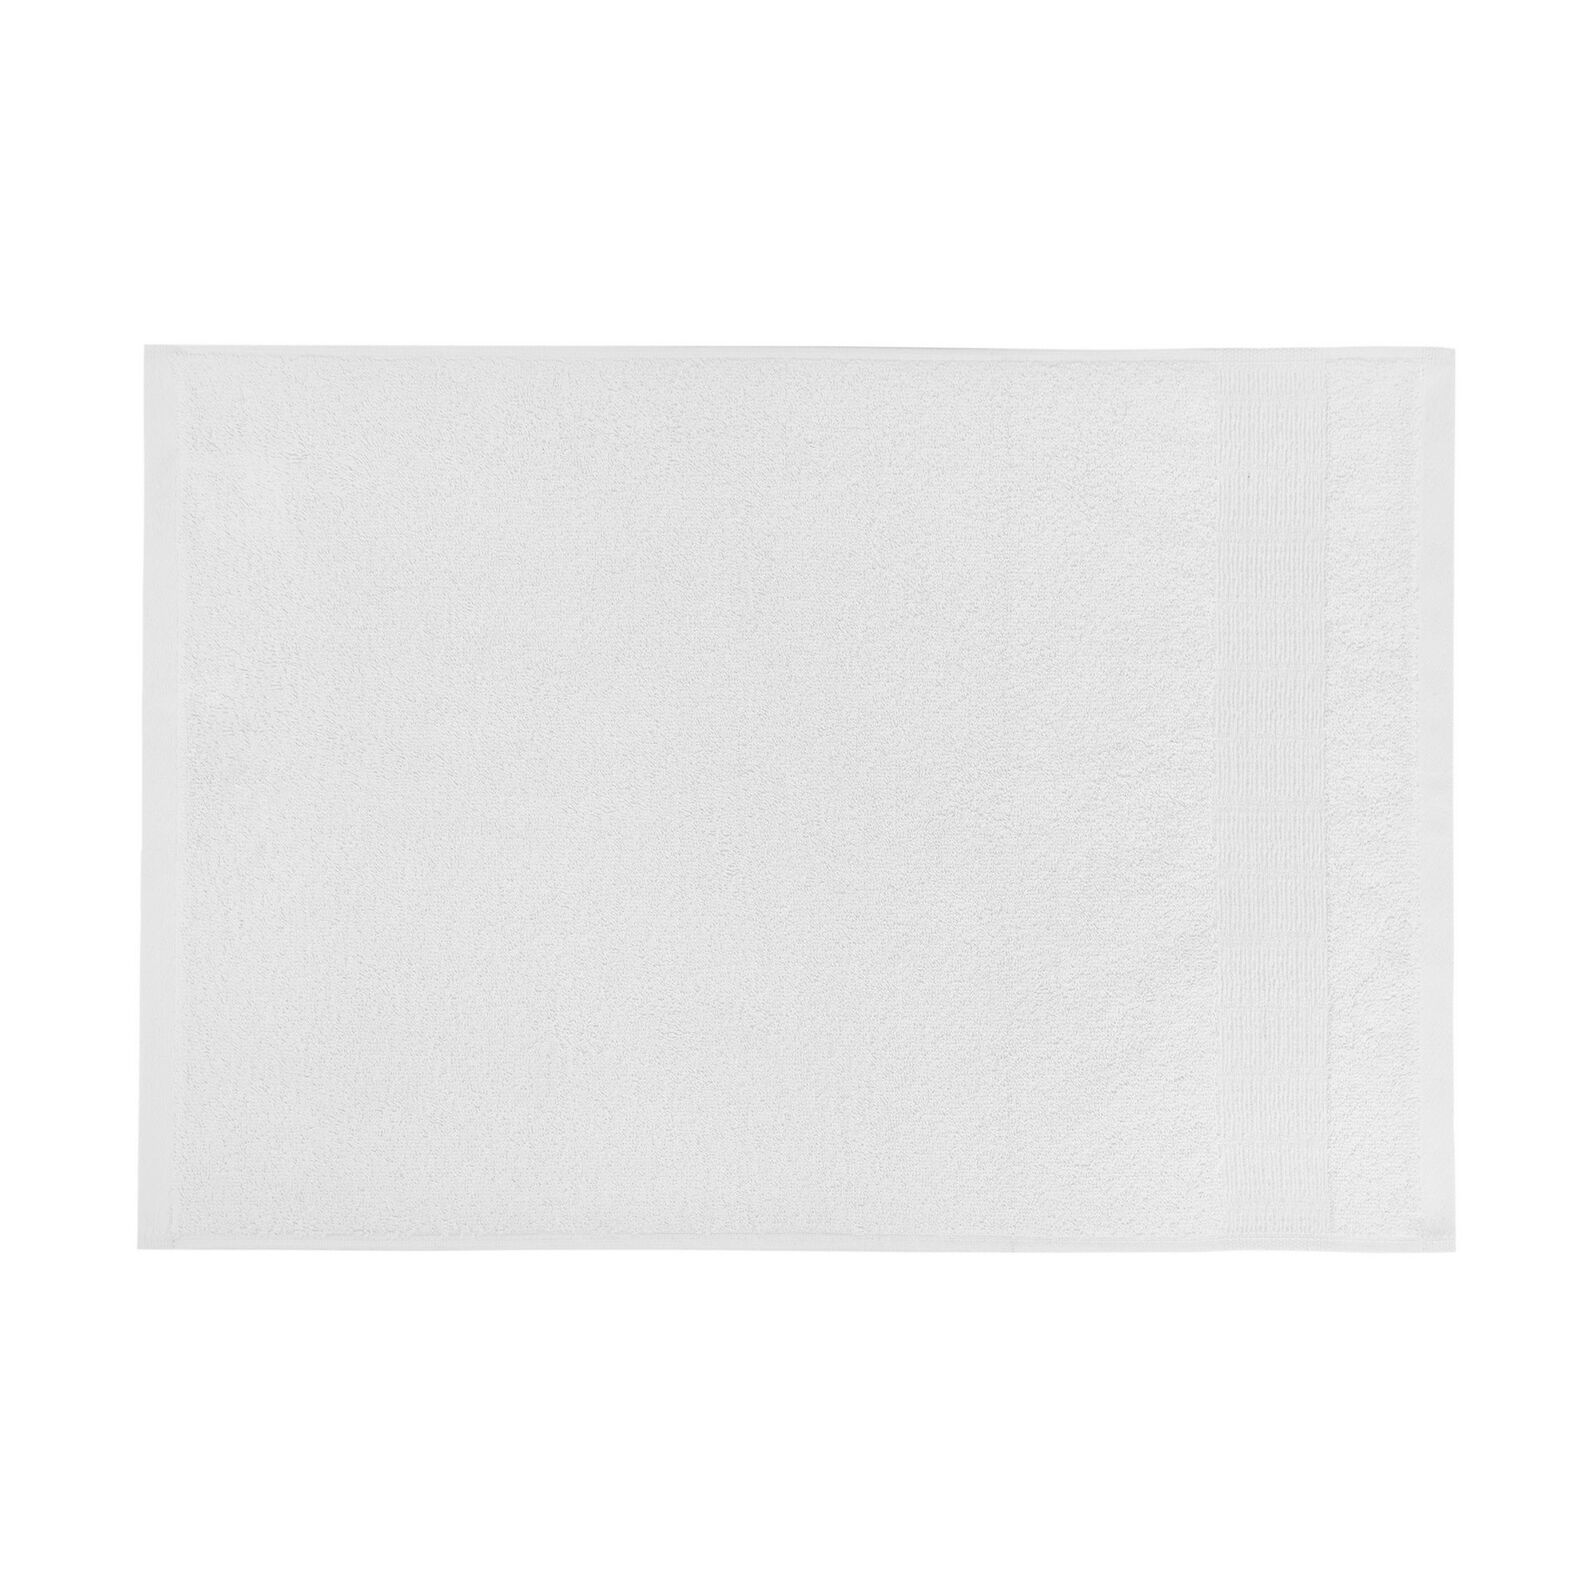 Solid colour 100% Egyptian cotton towel